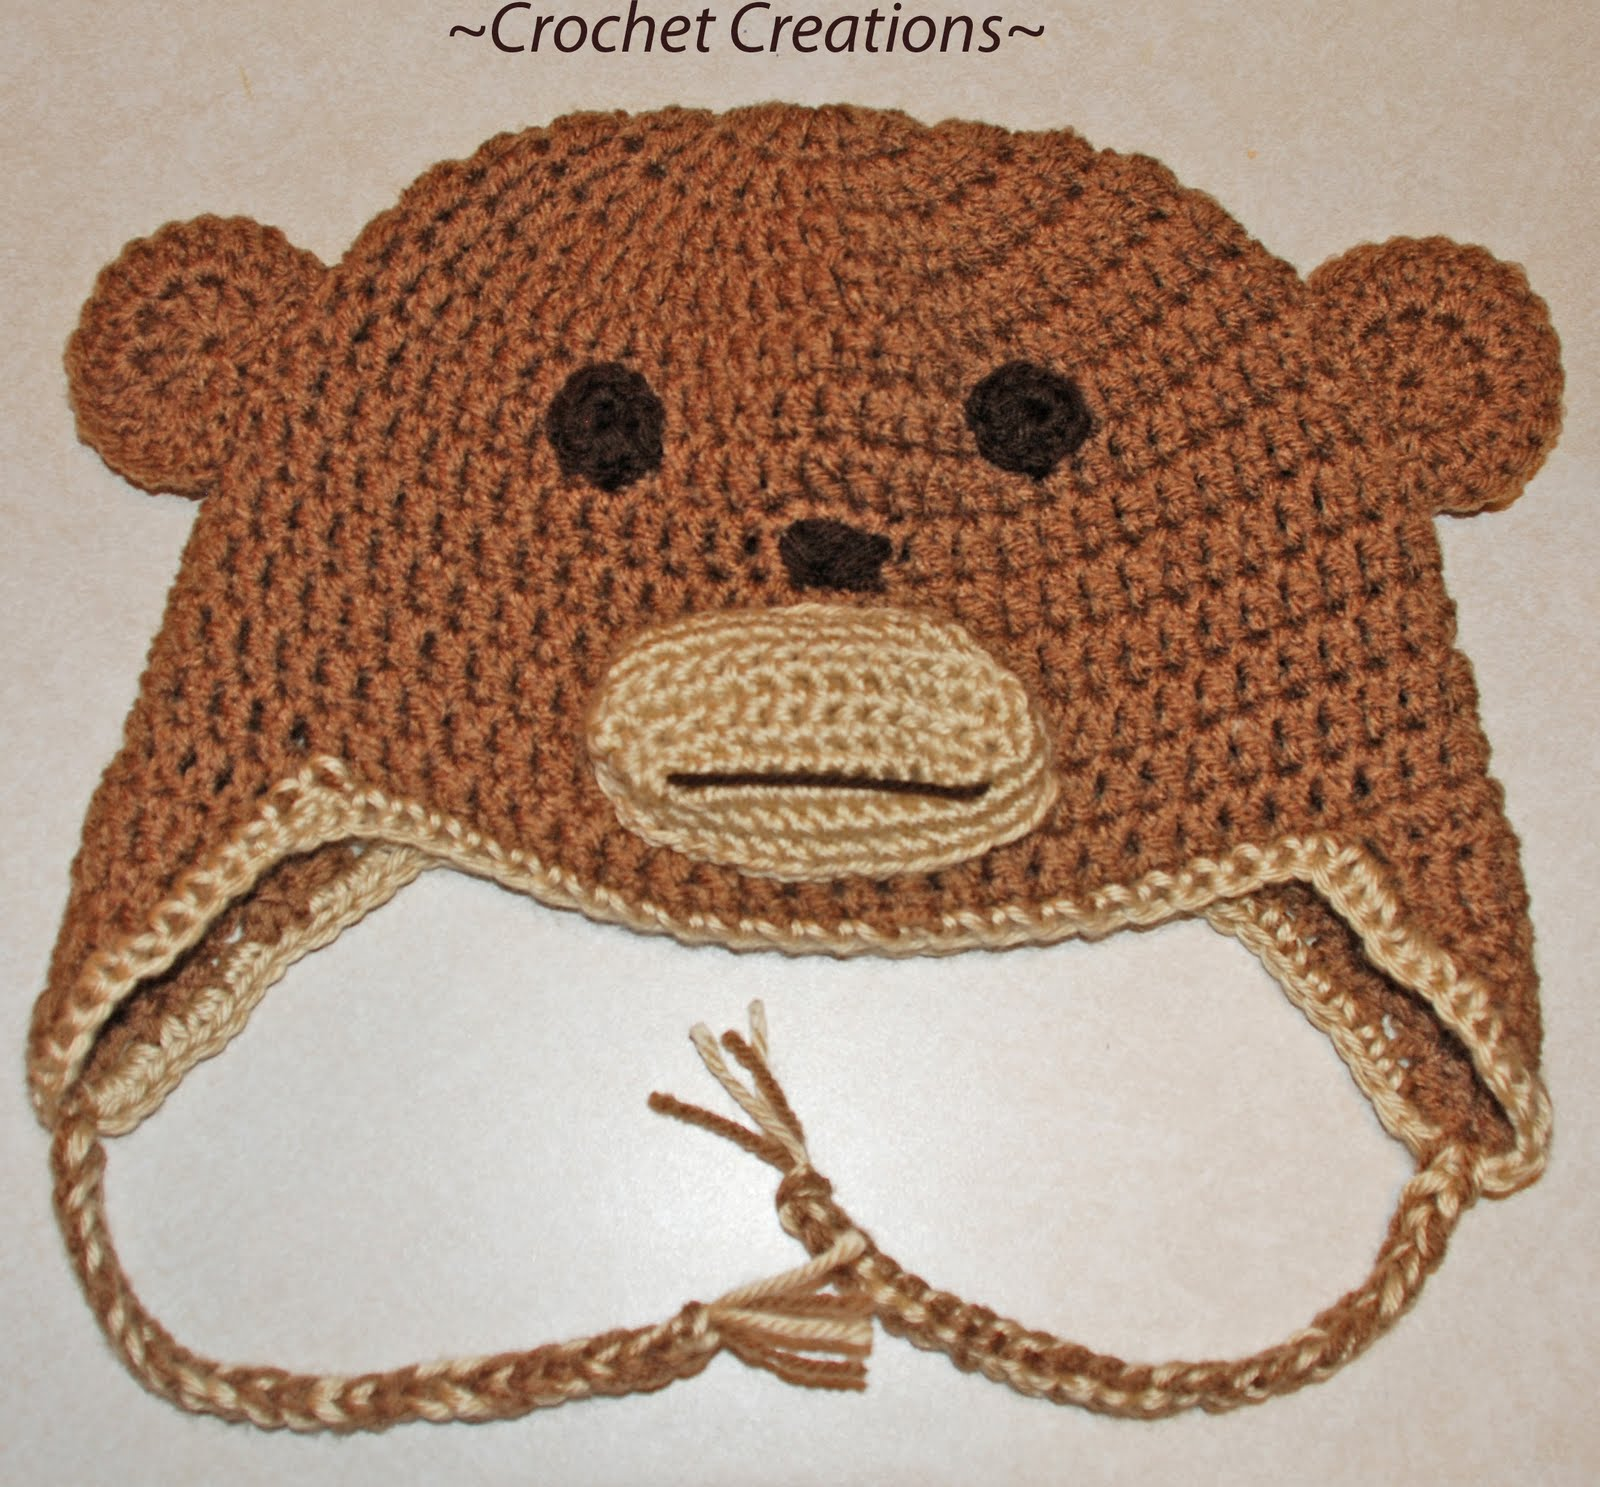 Crochet Earflap Hat : CROCHET EAR FLAP HATS Crochet For Beginners